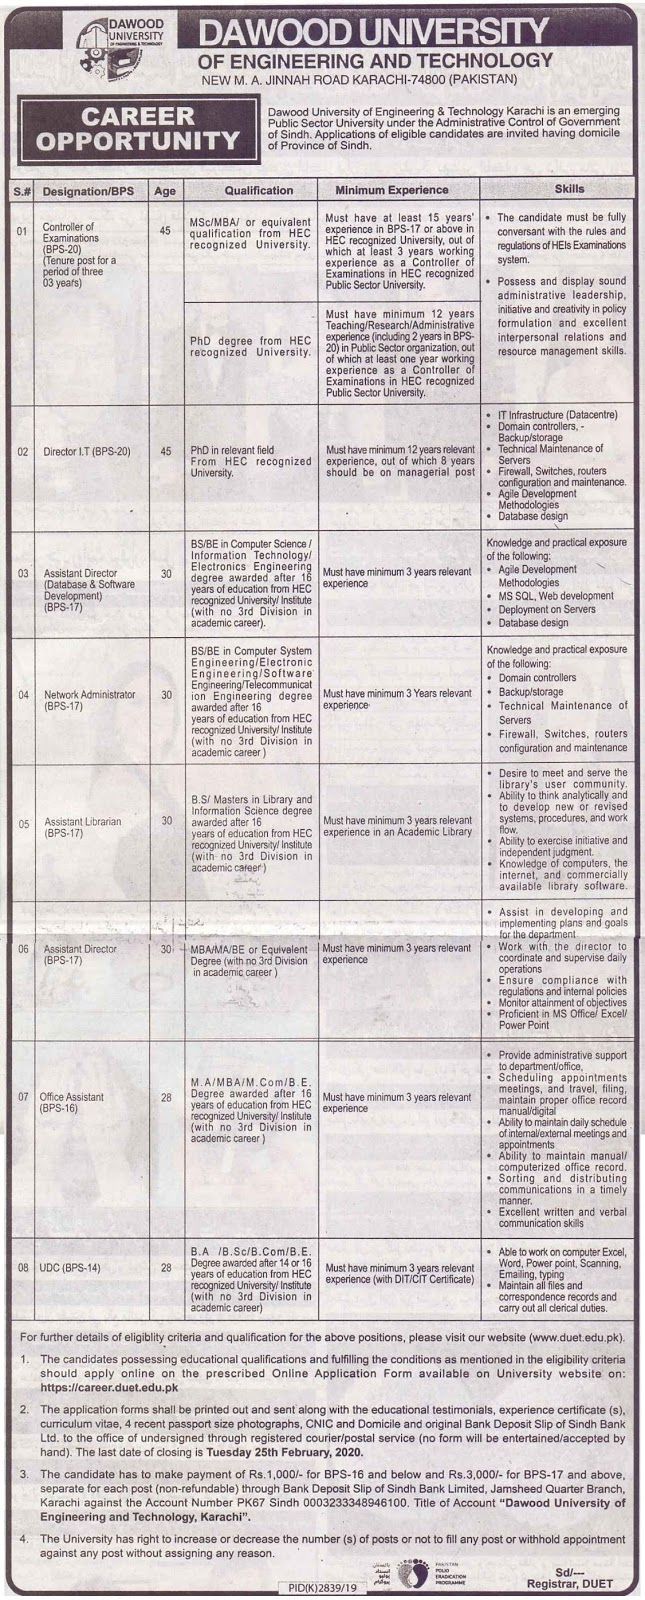 Dawood University of Engineering and Technology Jobs 2020